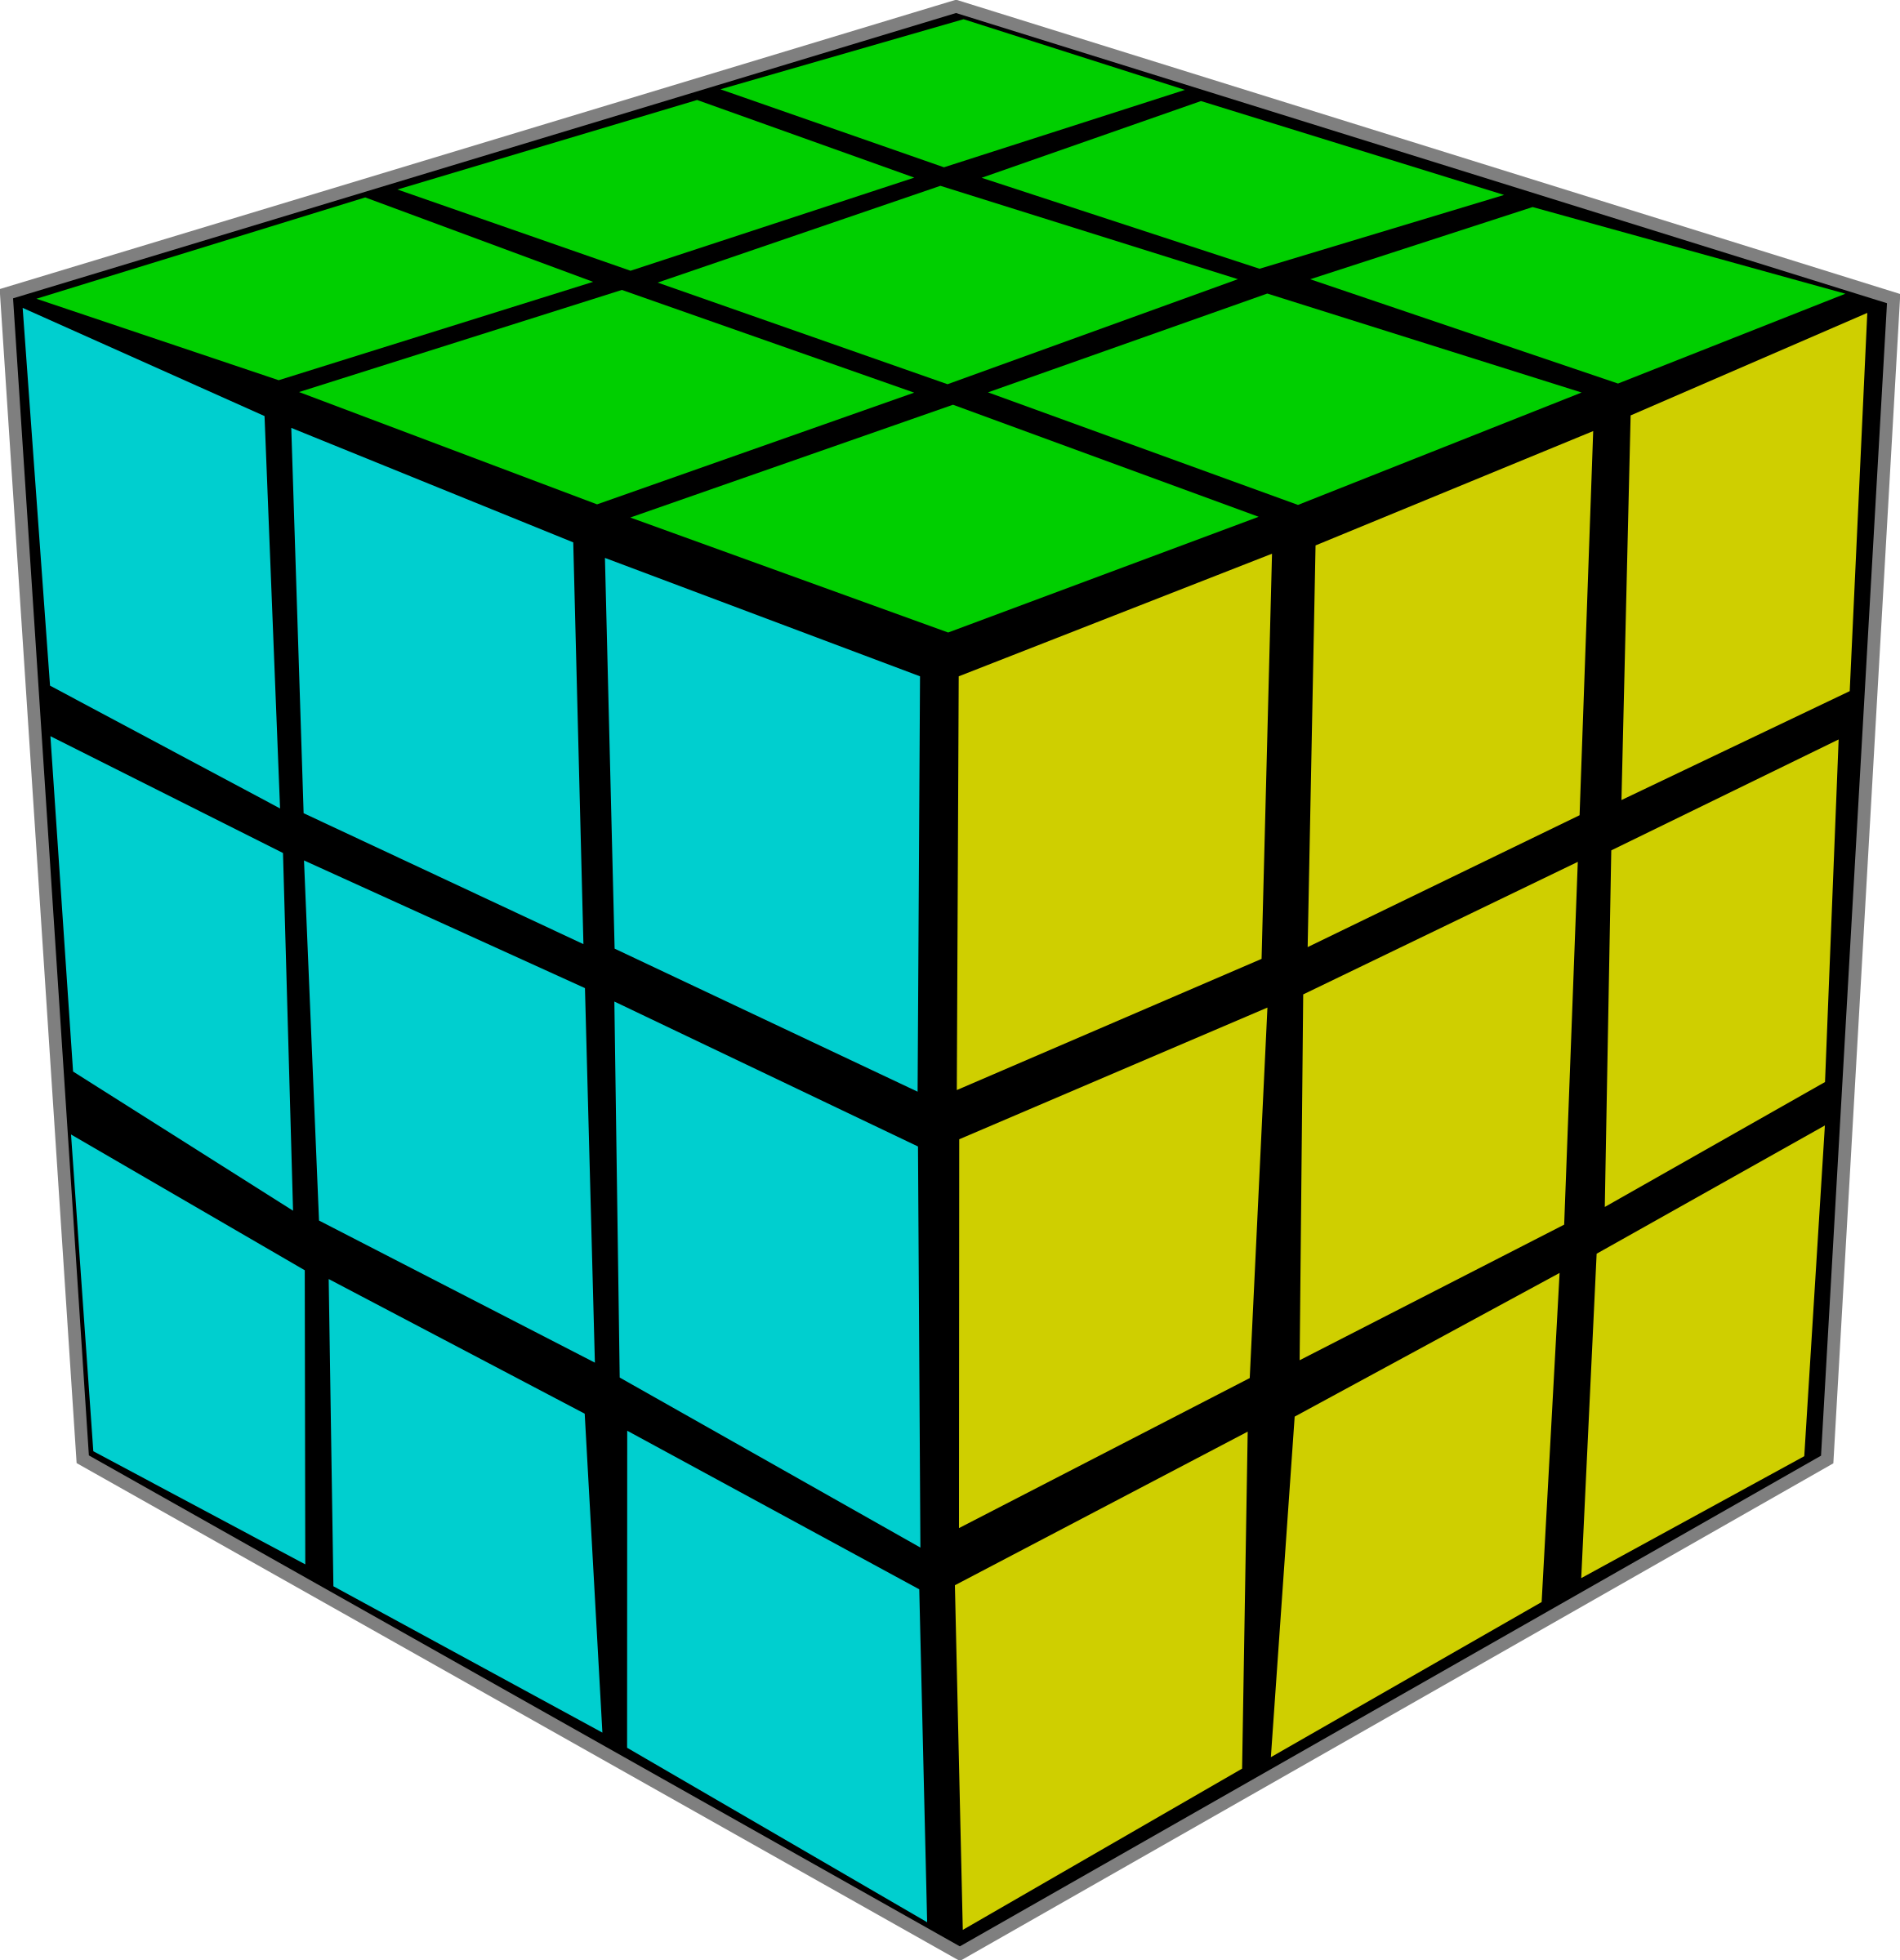 Cube clipart png. Rubik s image purepng